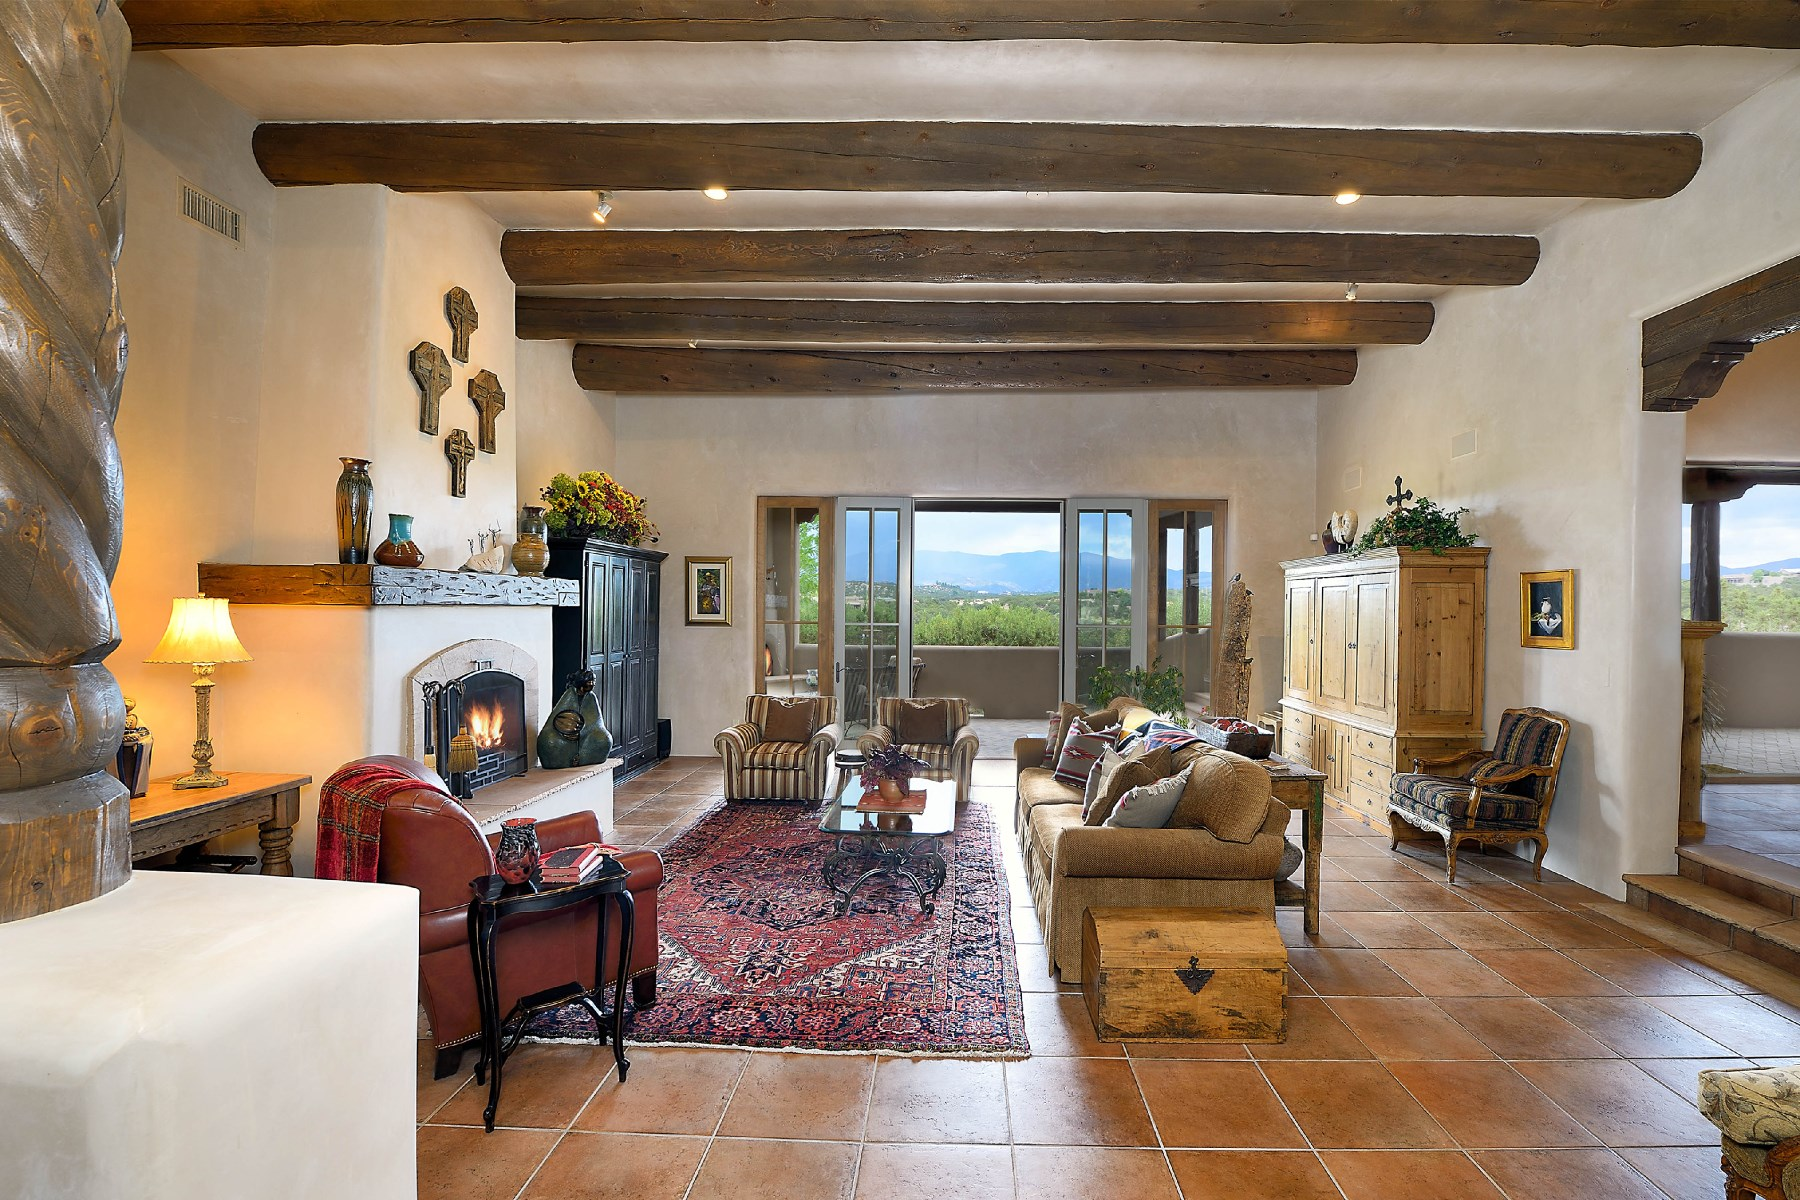 Single Family Home for Sale at 62 Star Dancer Trail Santa Fe, New Mexico, 87506 United States